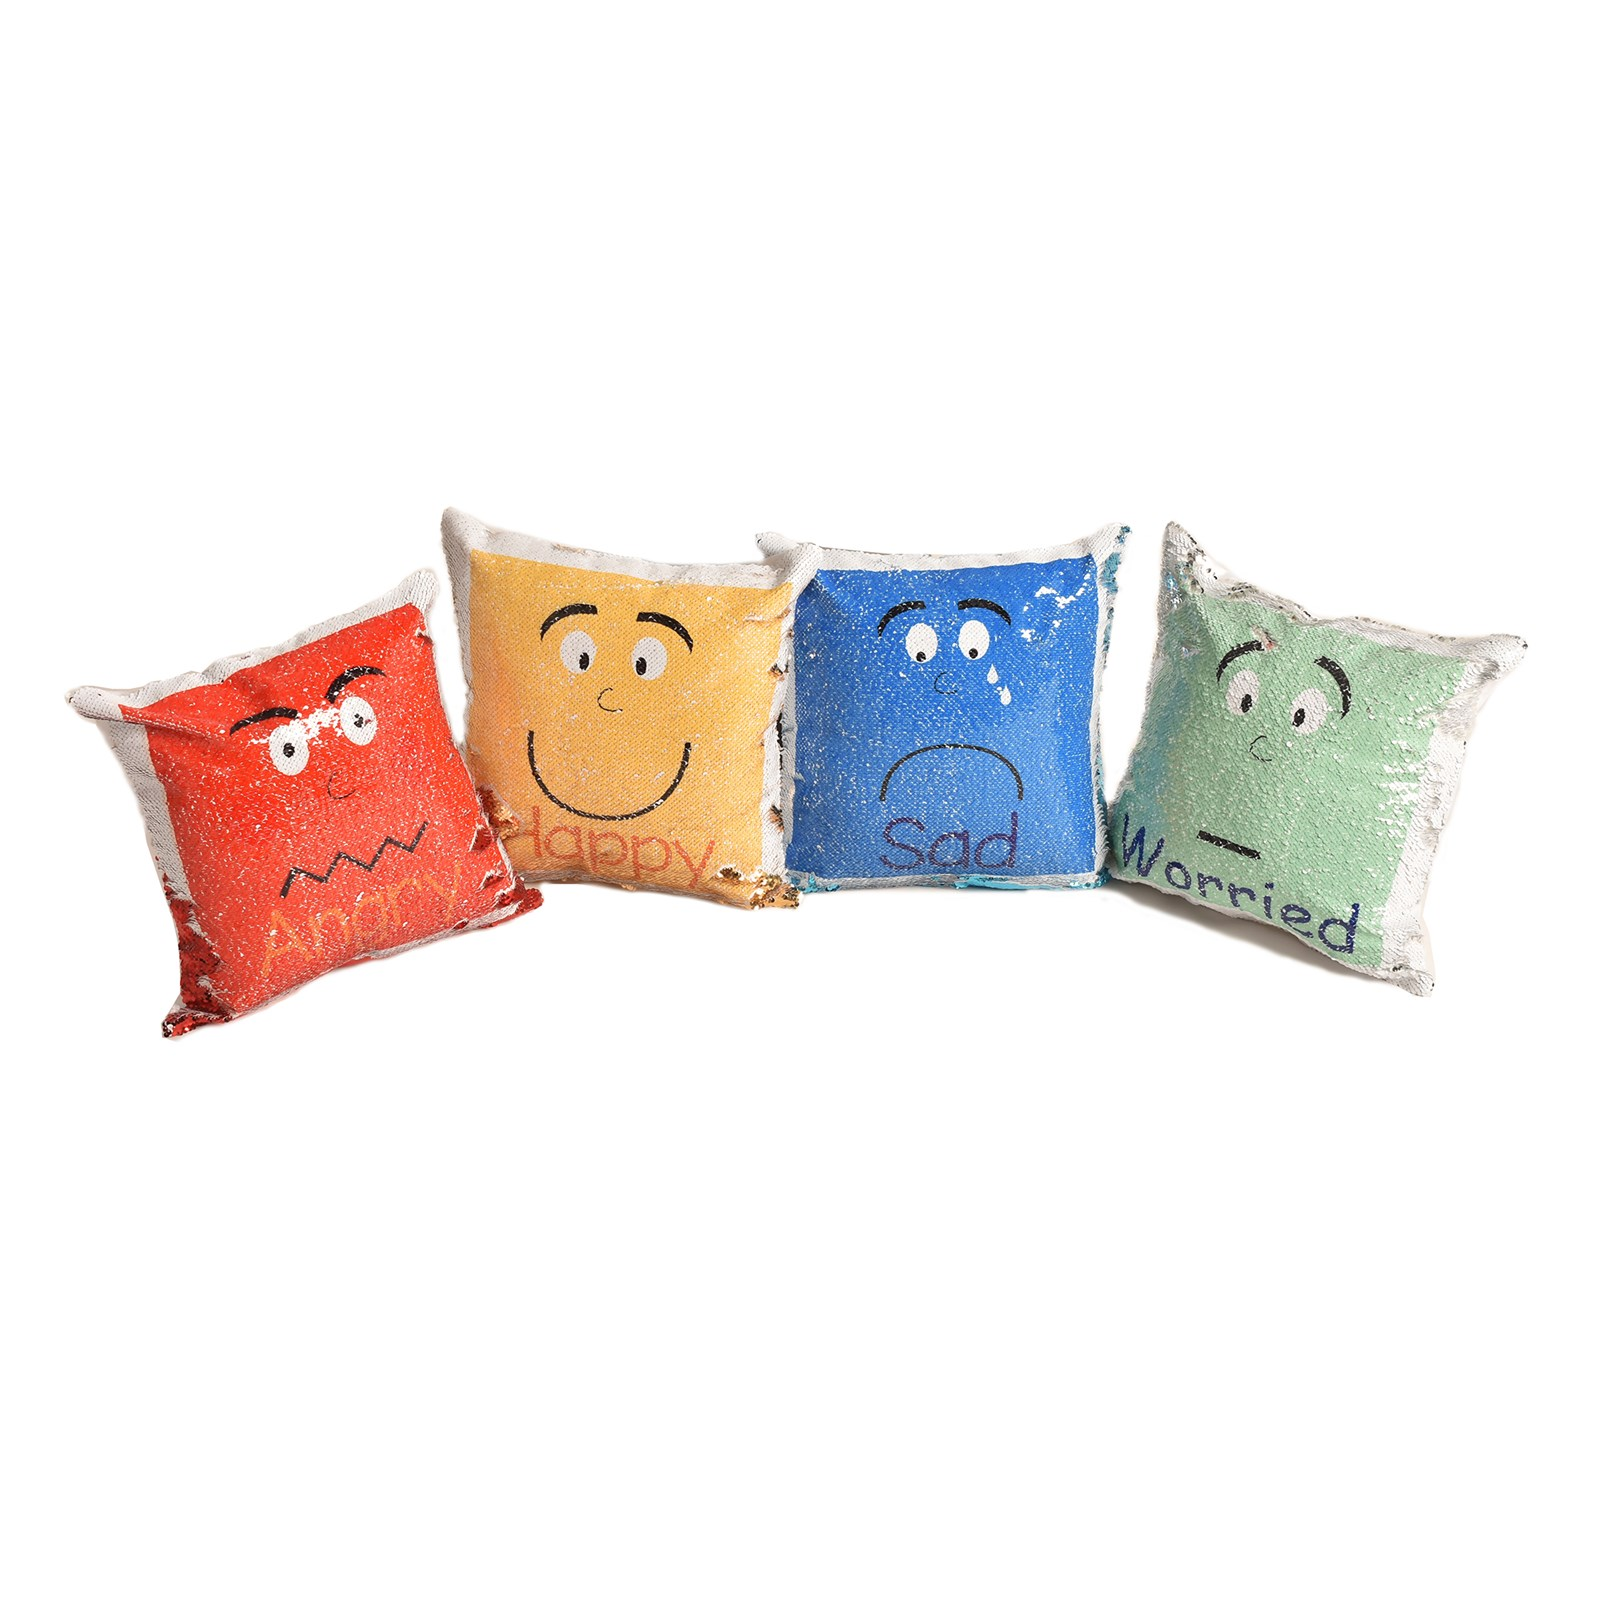 Reversible Sequin Emotion Cushions